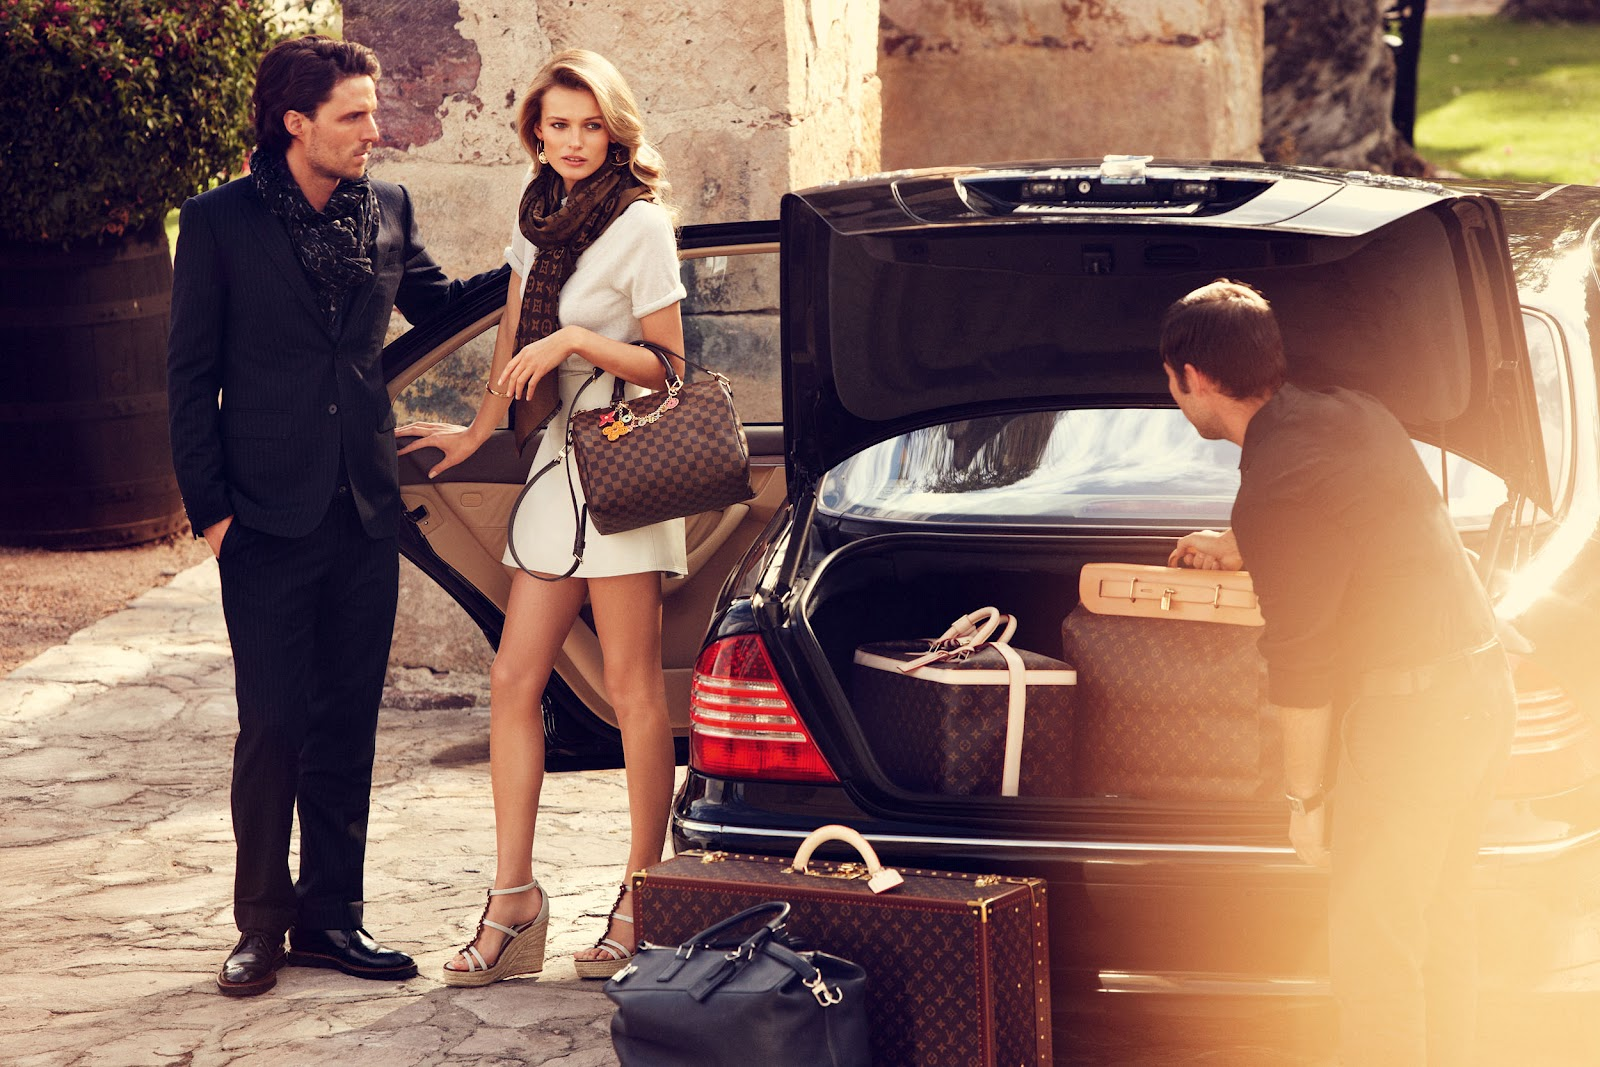 Edita-Vilkeviciute-by-Alexi-Lubomirski-A-Mexican-Road-Trip-Louis-Vuitton-Travel-Fall-2012-7